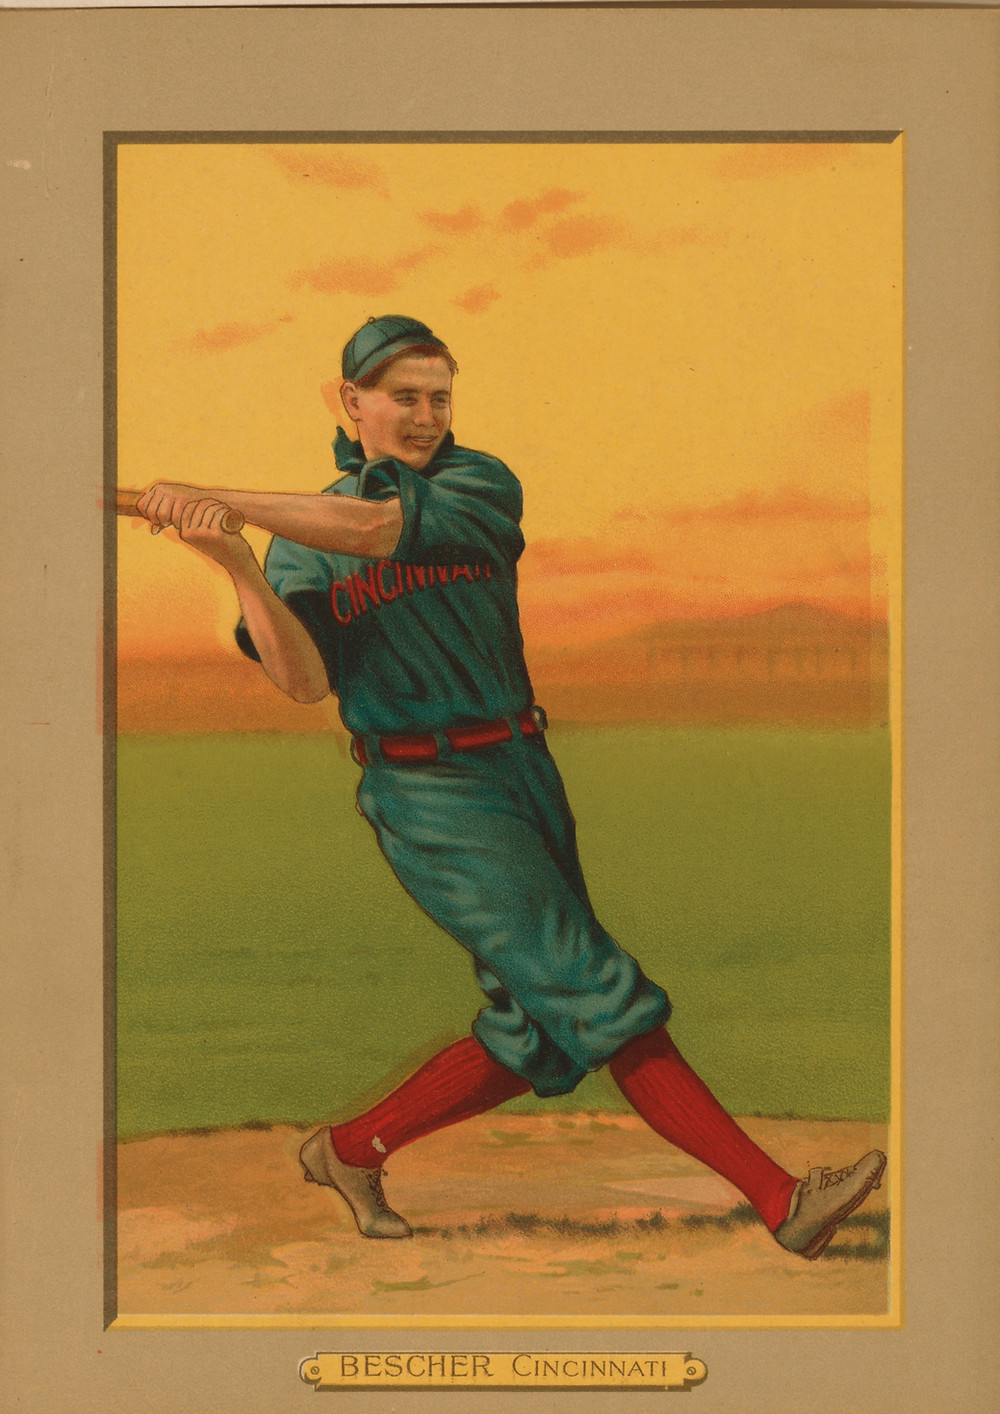 Old-time baseball cards are collectible, but just seeing the image inspires nostalgia for a time we never knew.